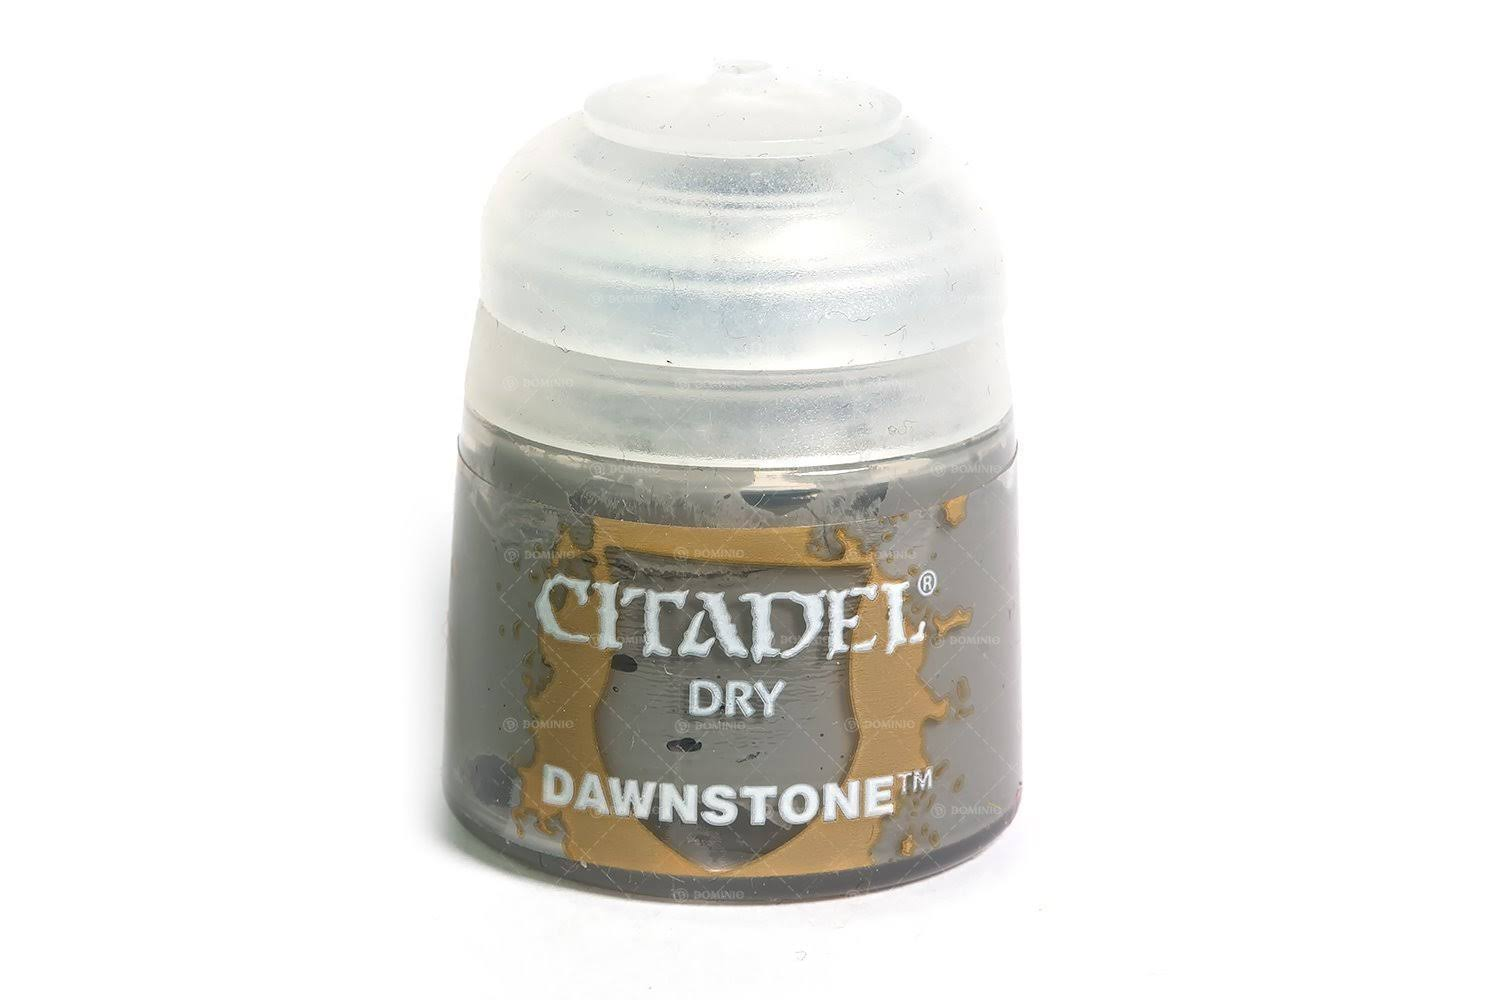 Citadel Dry Paint - Dawnstone, 12ml